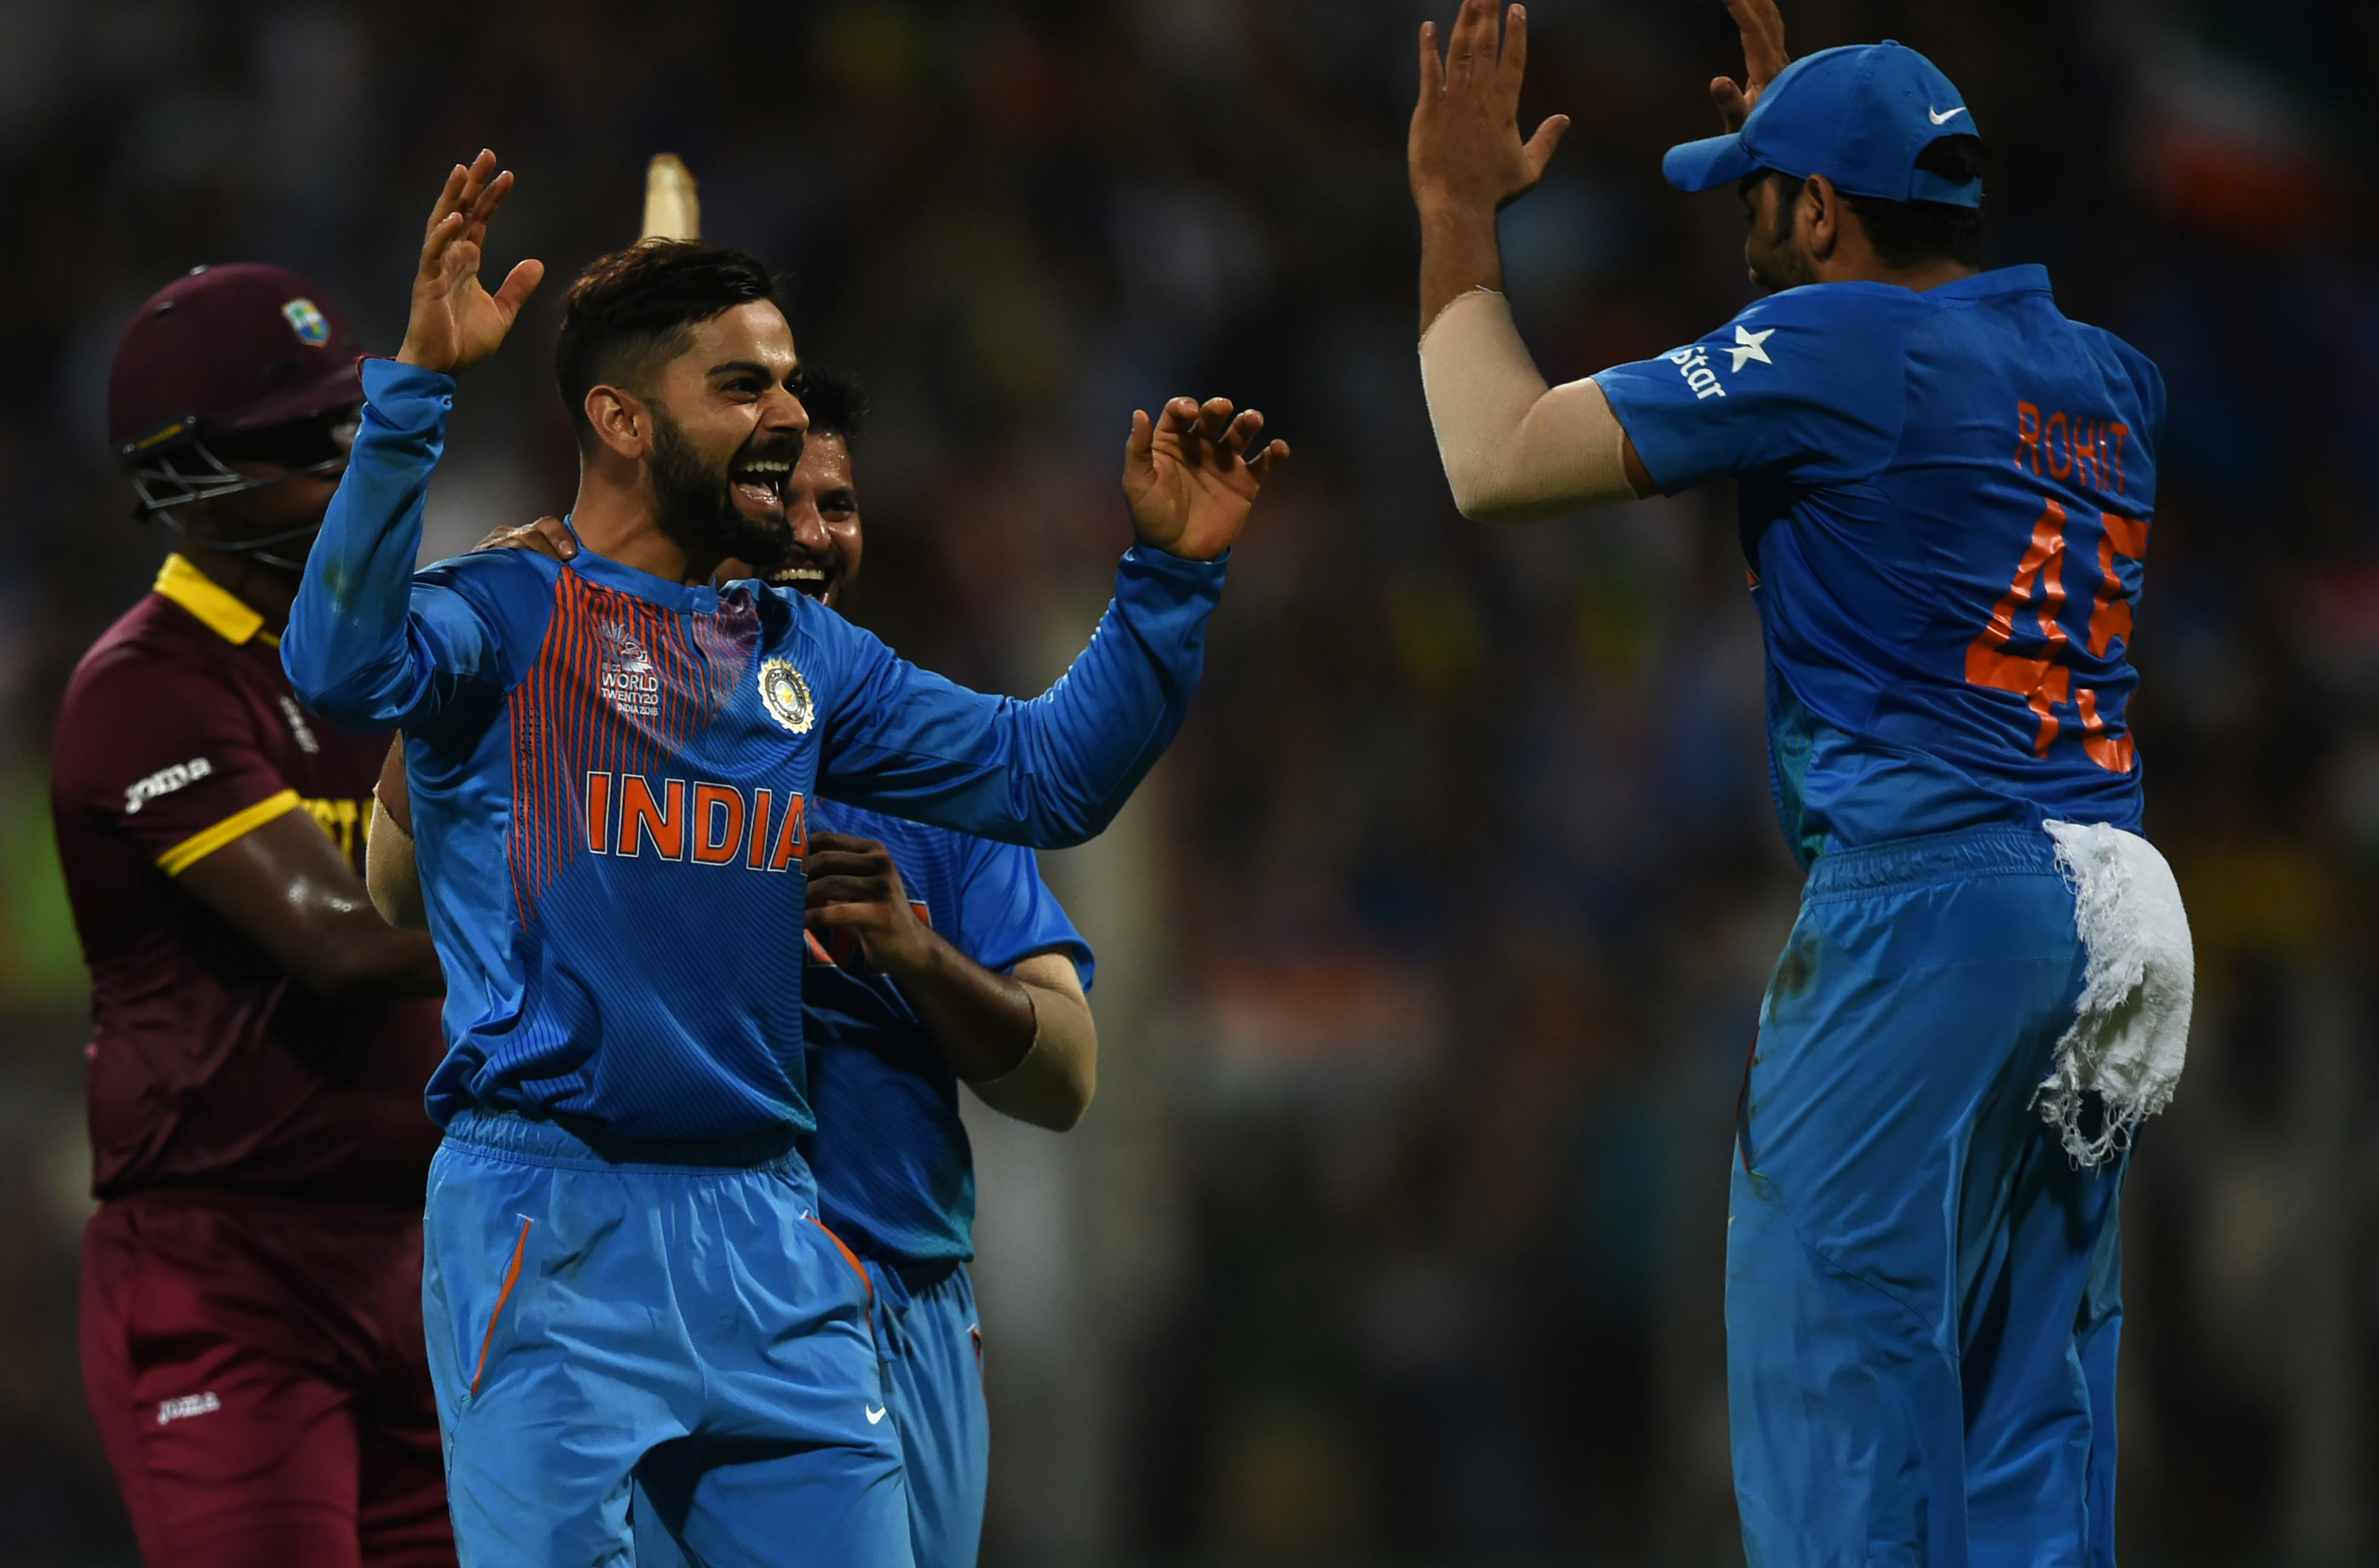 India's Virat Kohli(L)celebrates with teammate Rohit Sharma after taking the wicket of West Indies's Johnson Charles during the World T20 men's semi-final match between India and West Indies at The Wankhede Cricket Stadium in Mumbai on March 31, 2016. / AFP / INDRANIL MUKHERJEE